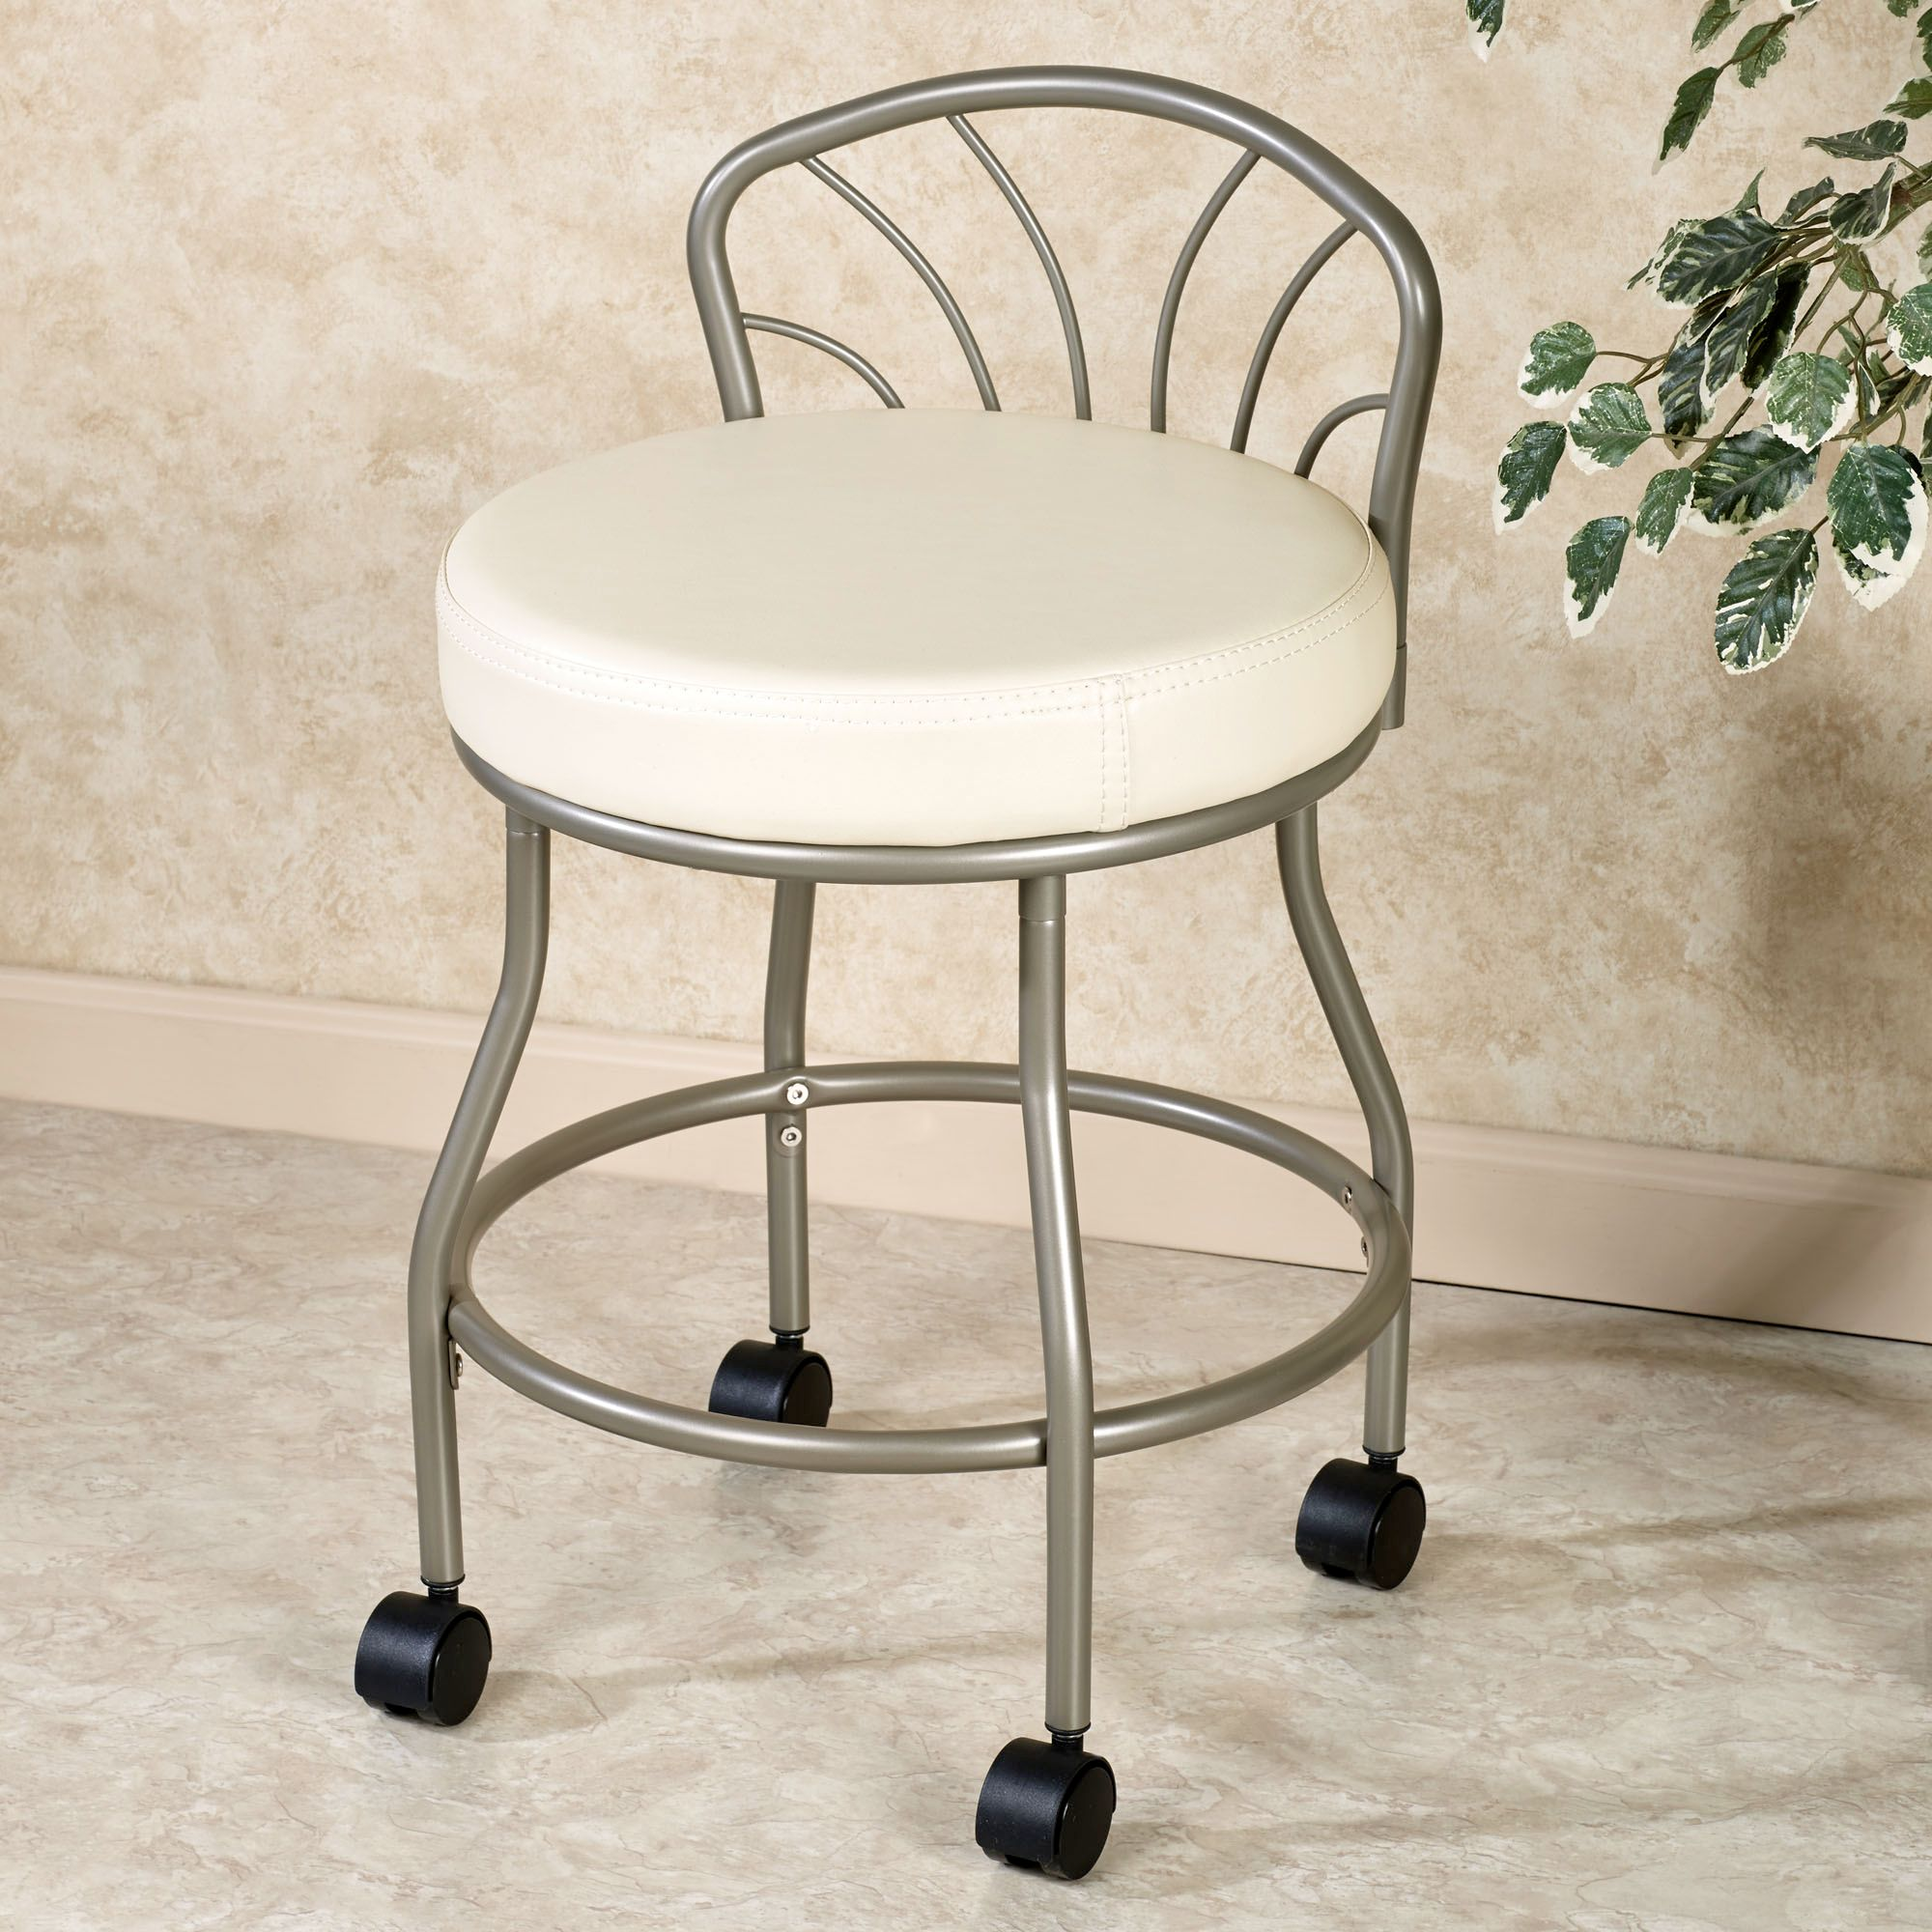 Bathroom Stool With Wheels Rolling Vanity Stool Homesfeed